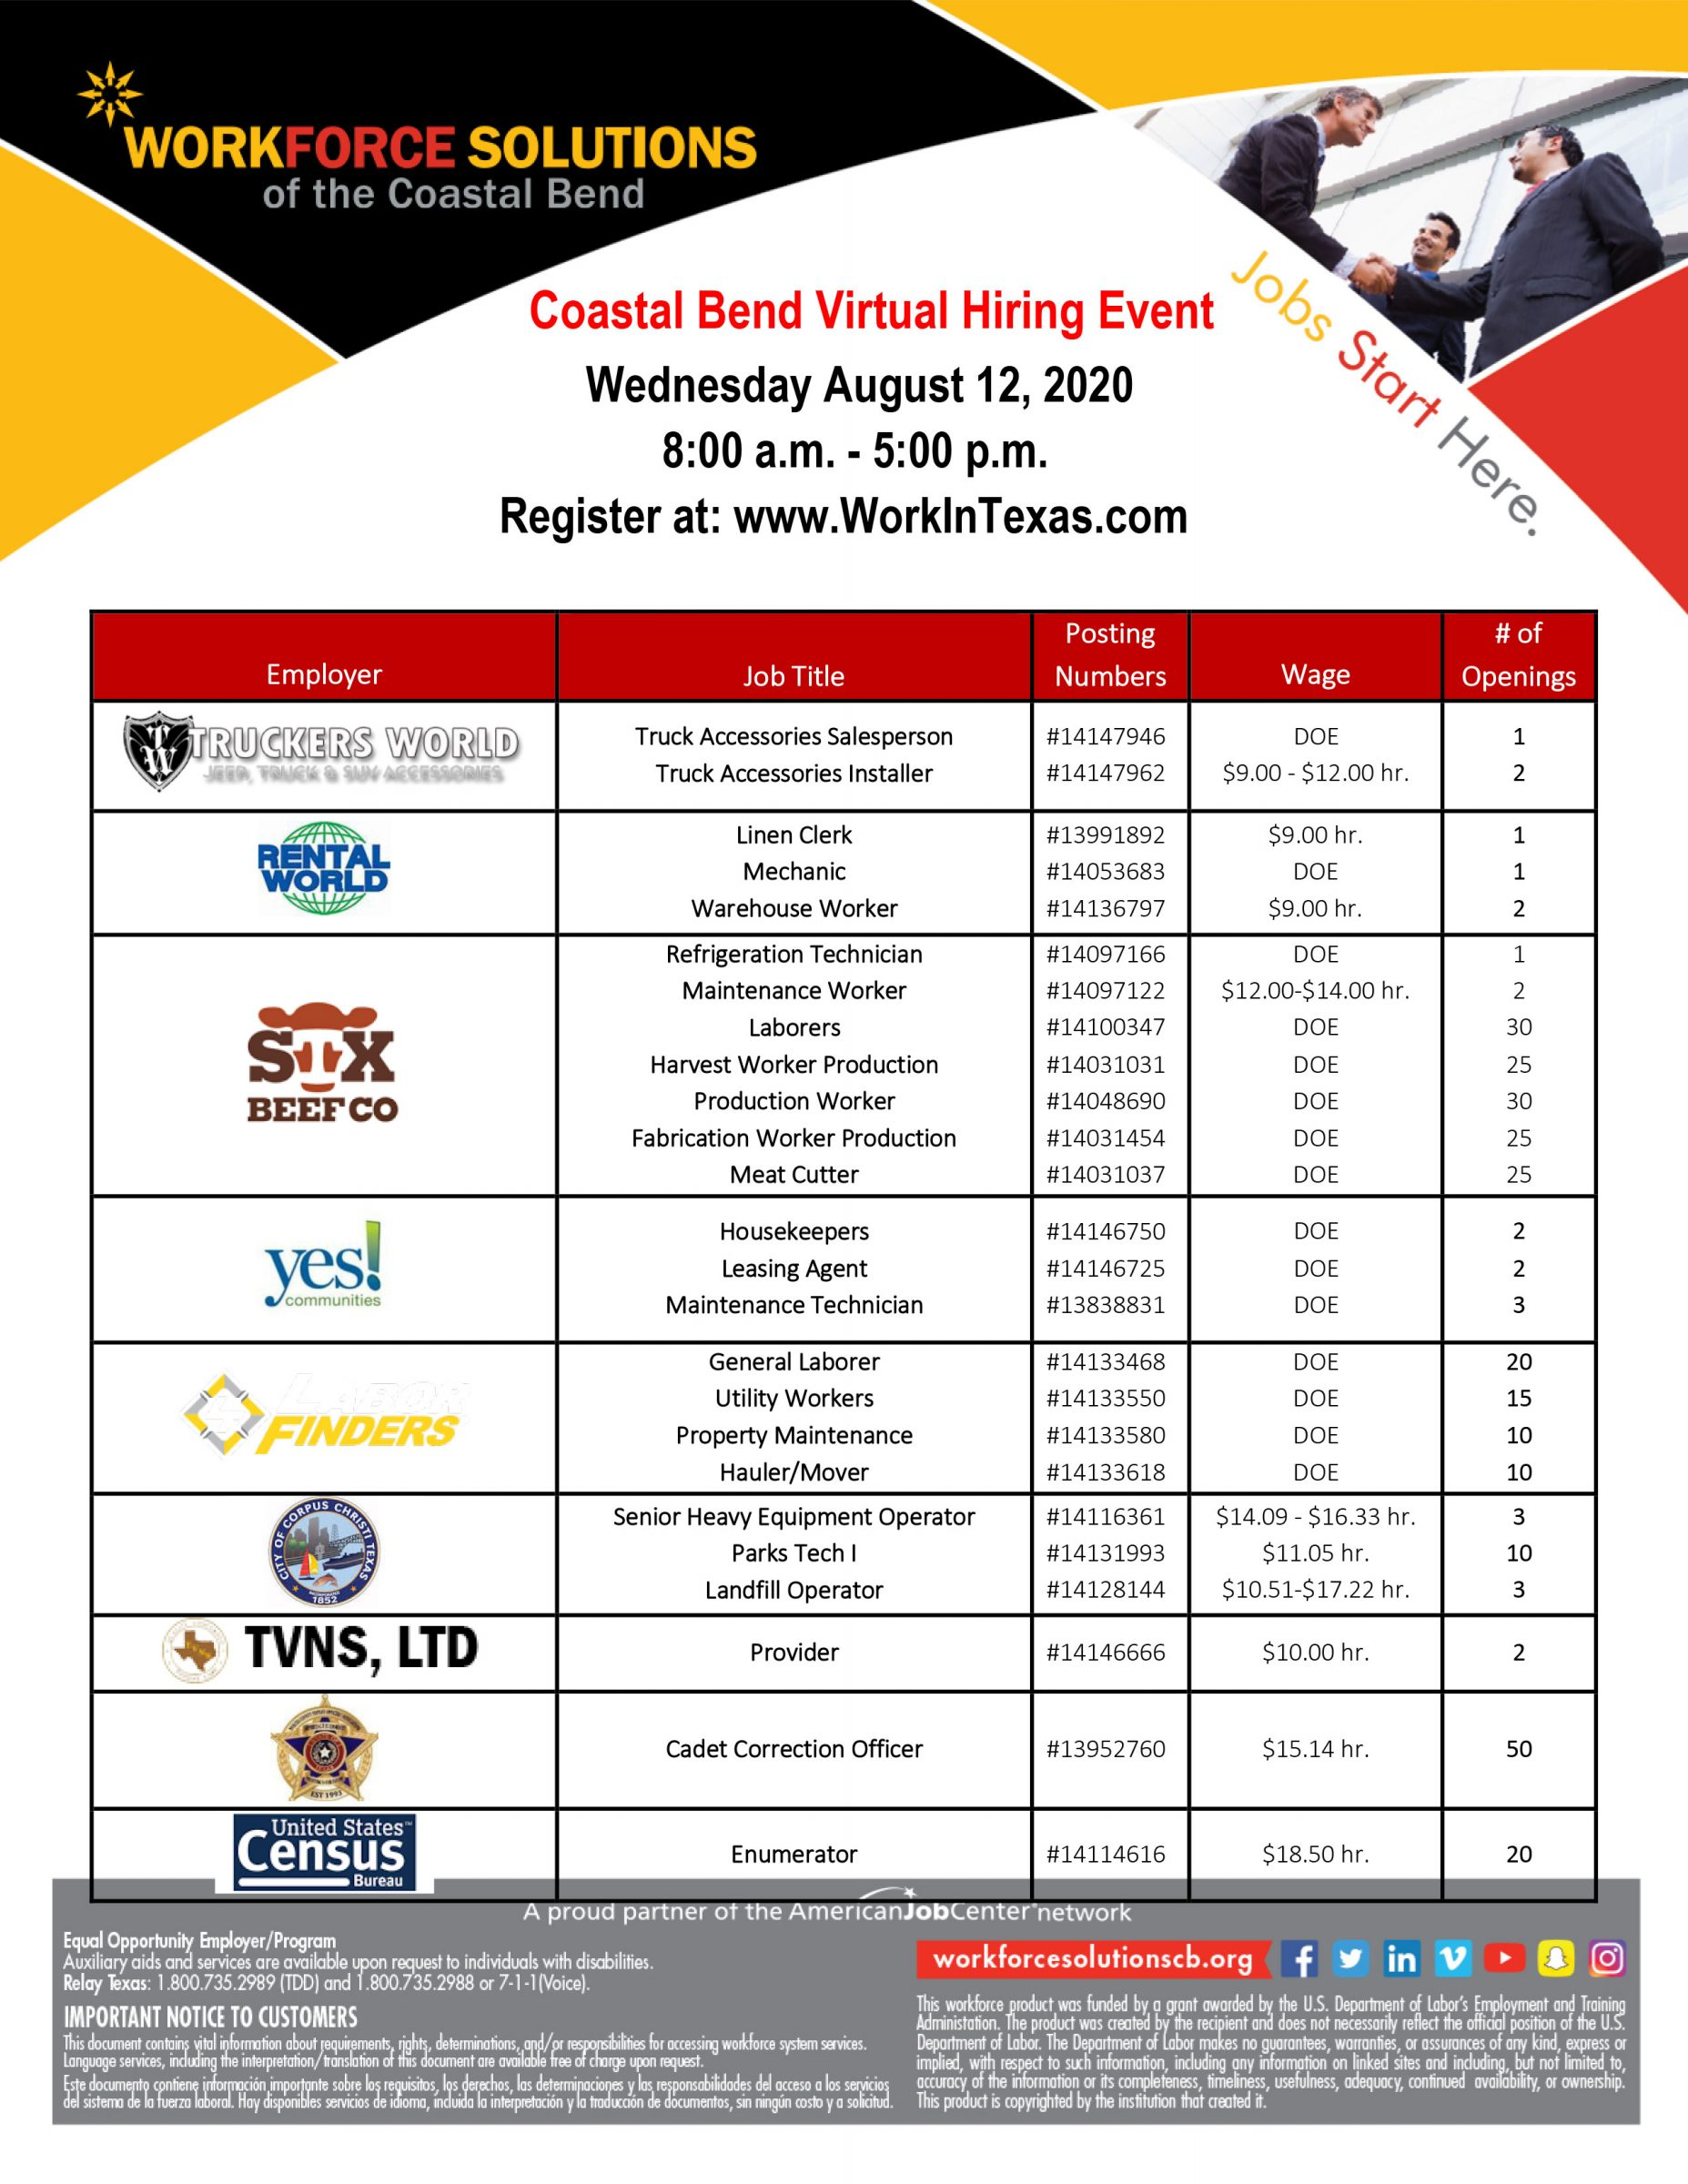 Register at workintexas.com for the Coastal bend Virtual Hiring Event on Wednesday, April 12, 2020, 8:00 A.M. - 5:00 P.M.